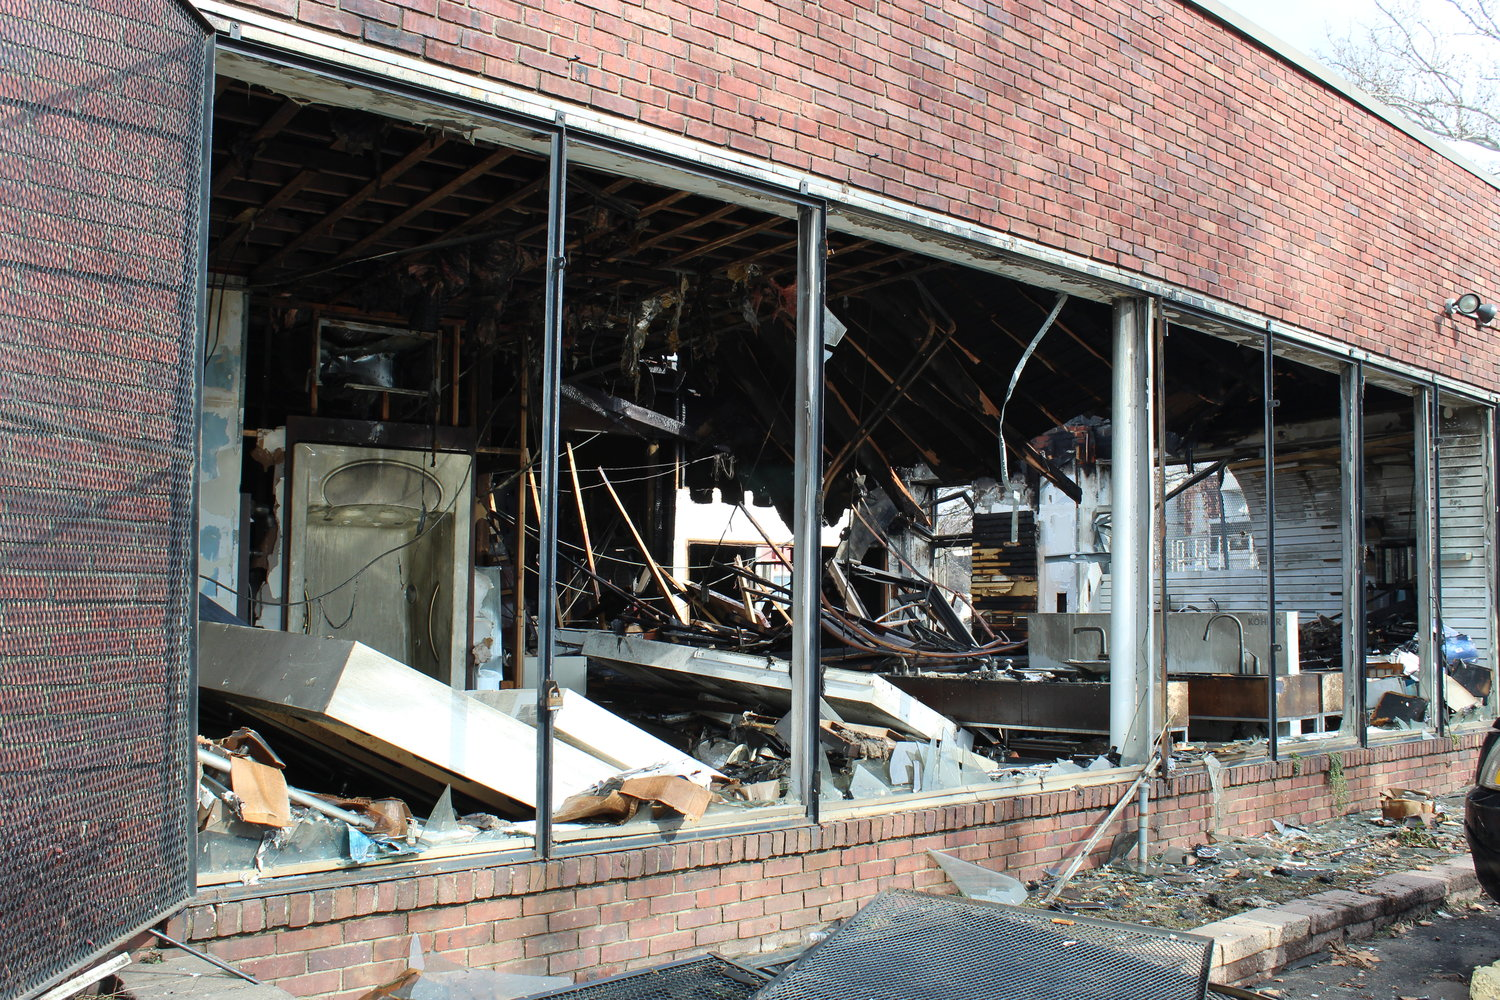 The blaze caused parts of the ceiling to buckle and blew out most of the store's windows.